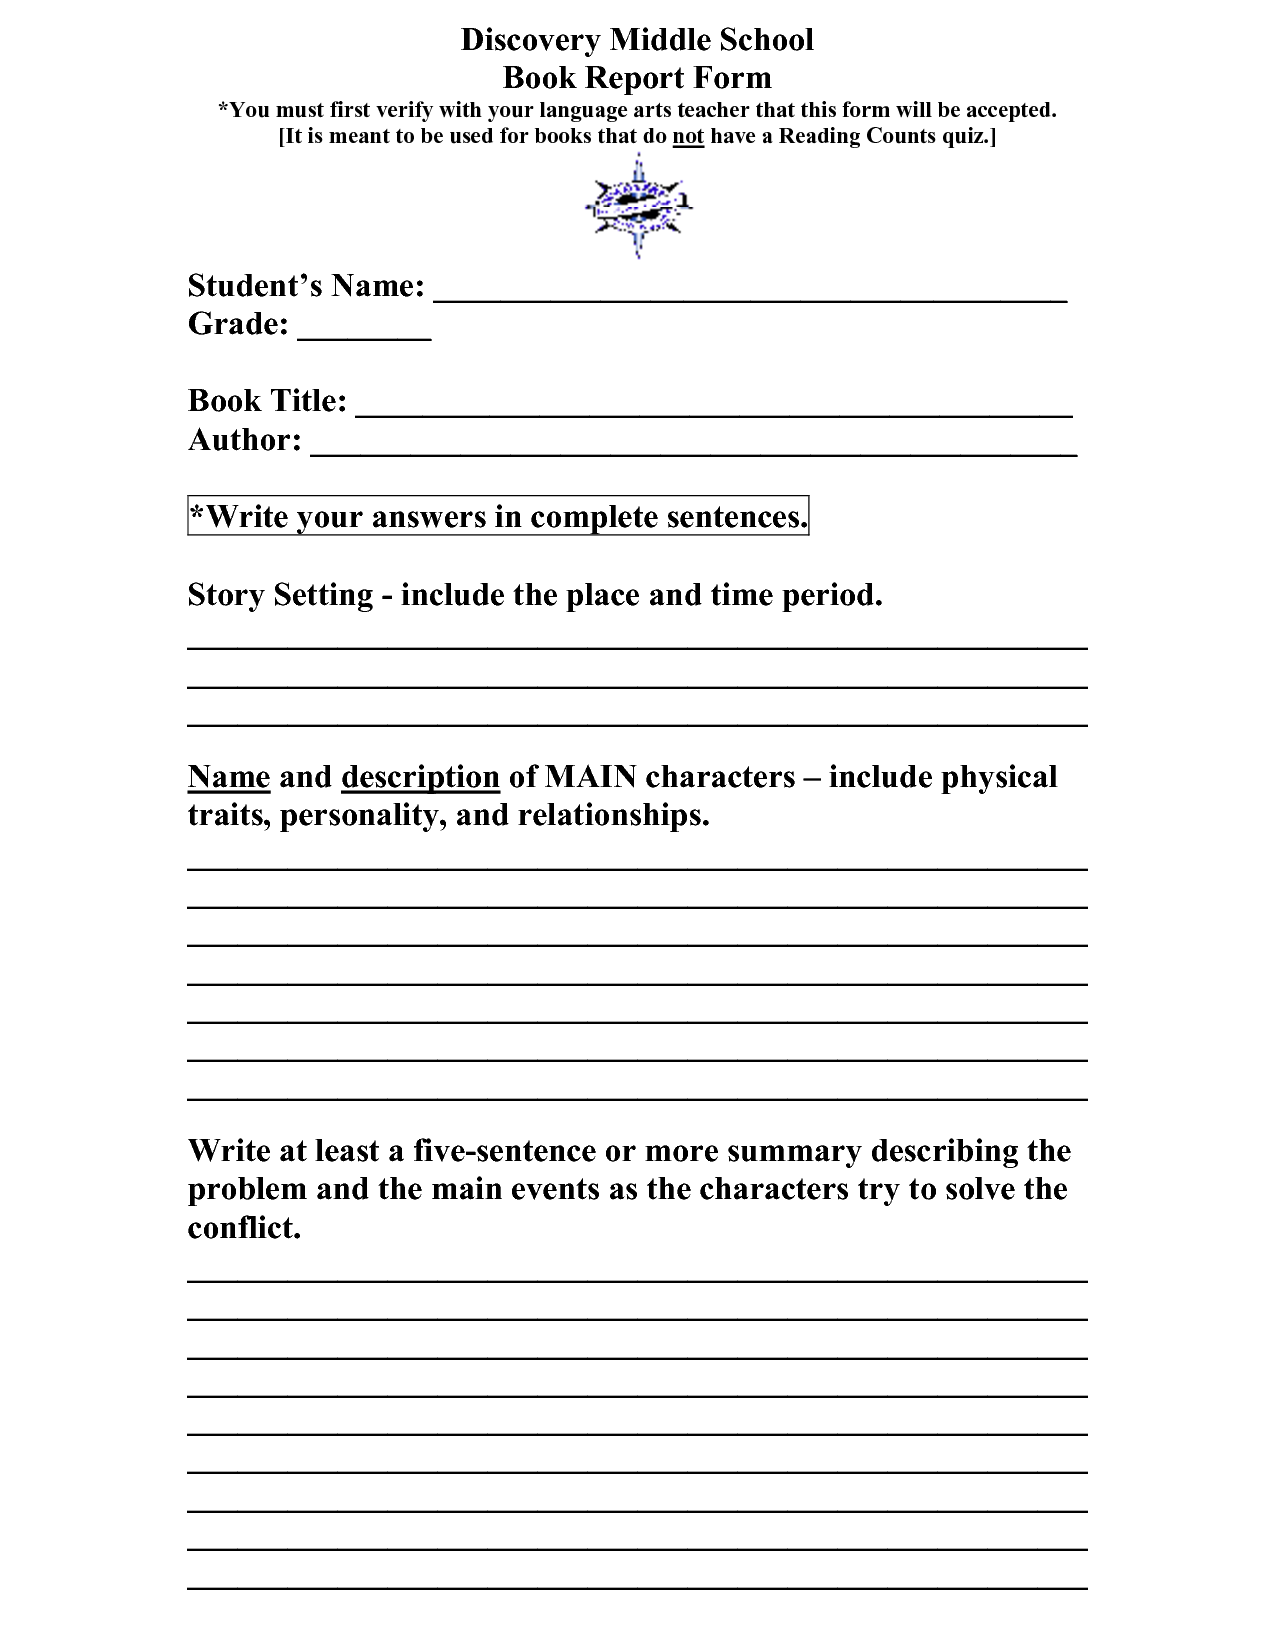 high school book report template High school completion (hsc) general educational development (ged)  for your non-fiction book report, you will be filling out the form attached to this note.